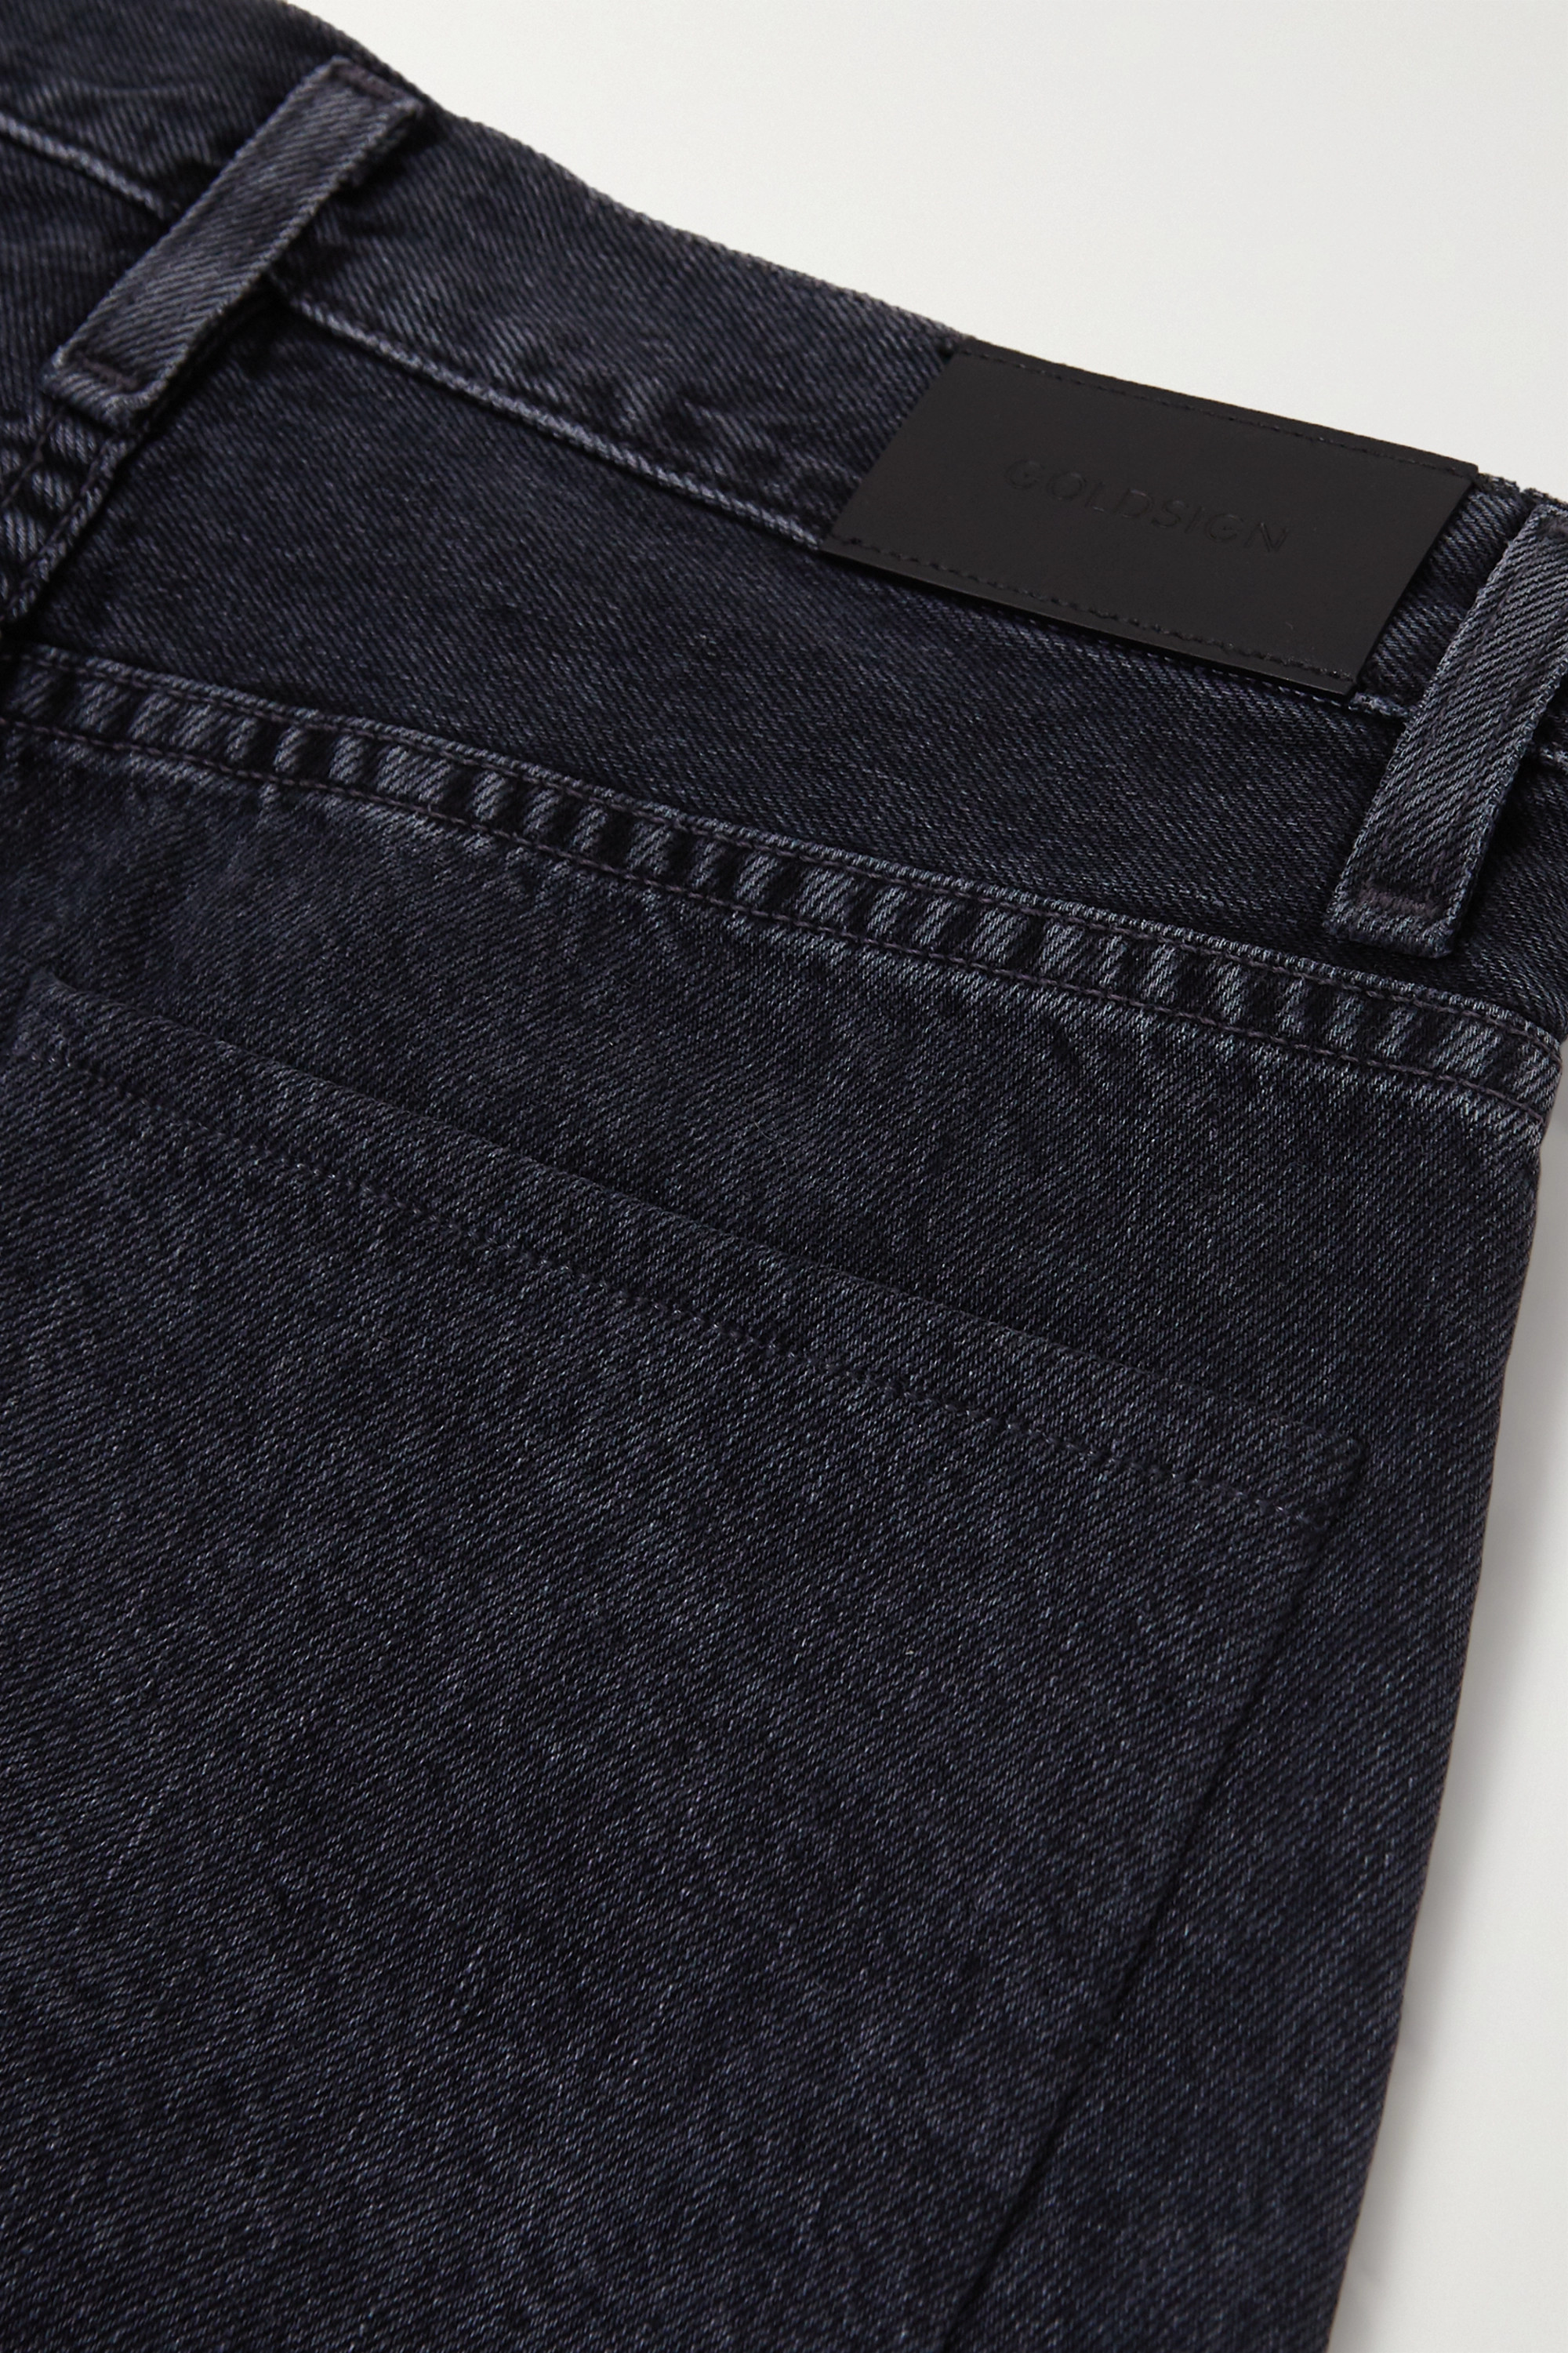 GOLDSIGN + NET SUSTAIN The Pleat Curve cropped high-rise tapered jeans